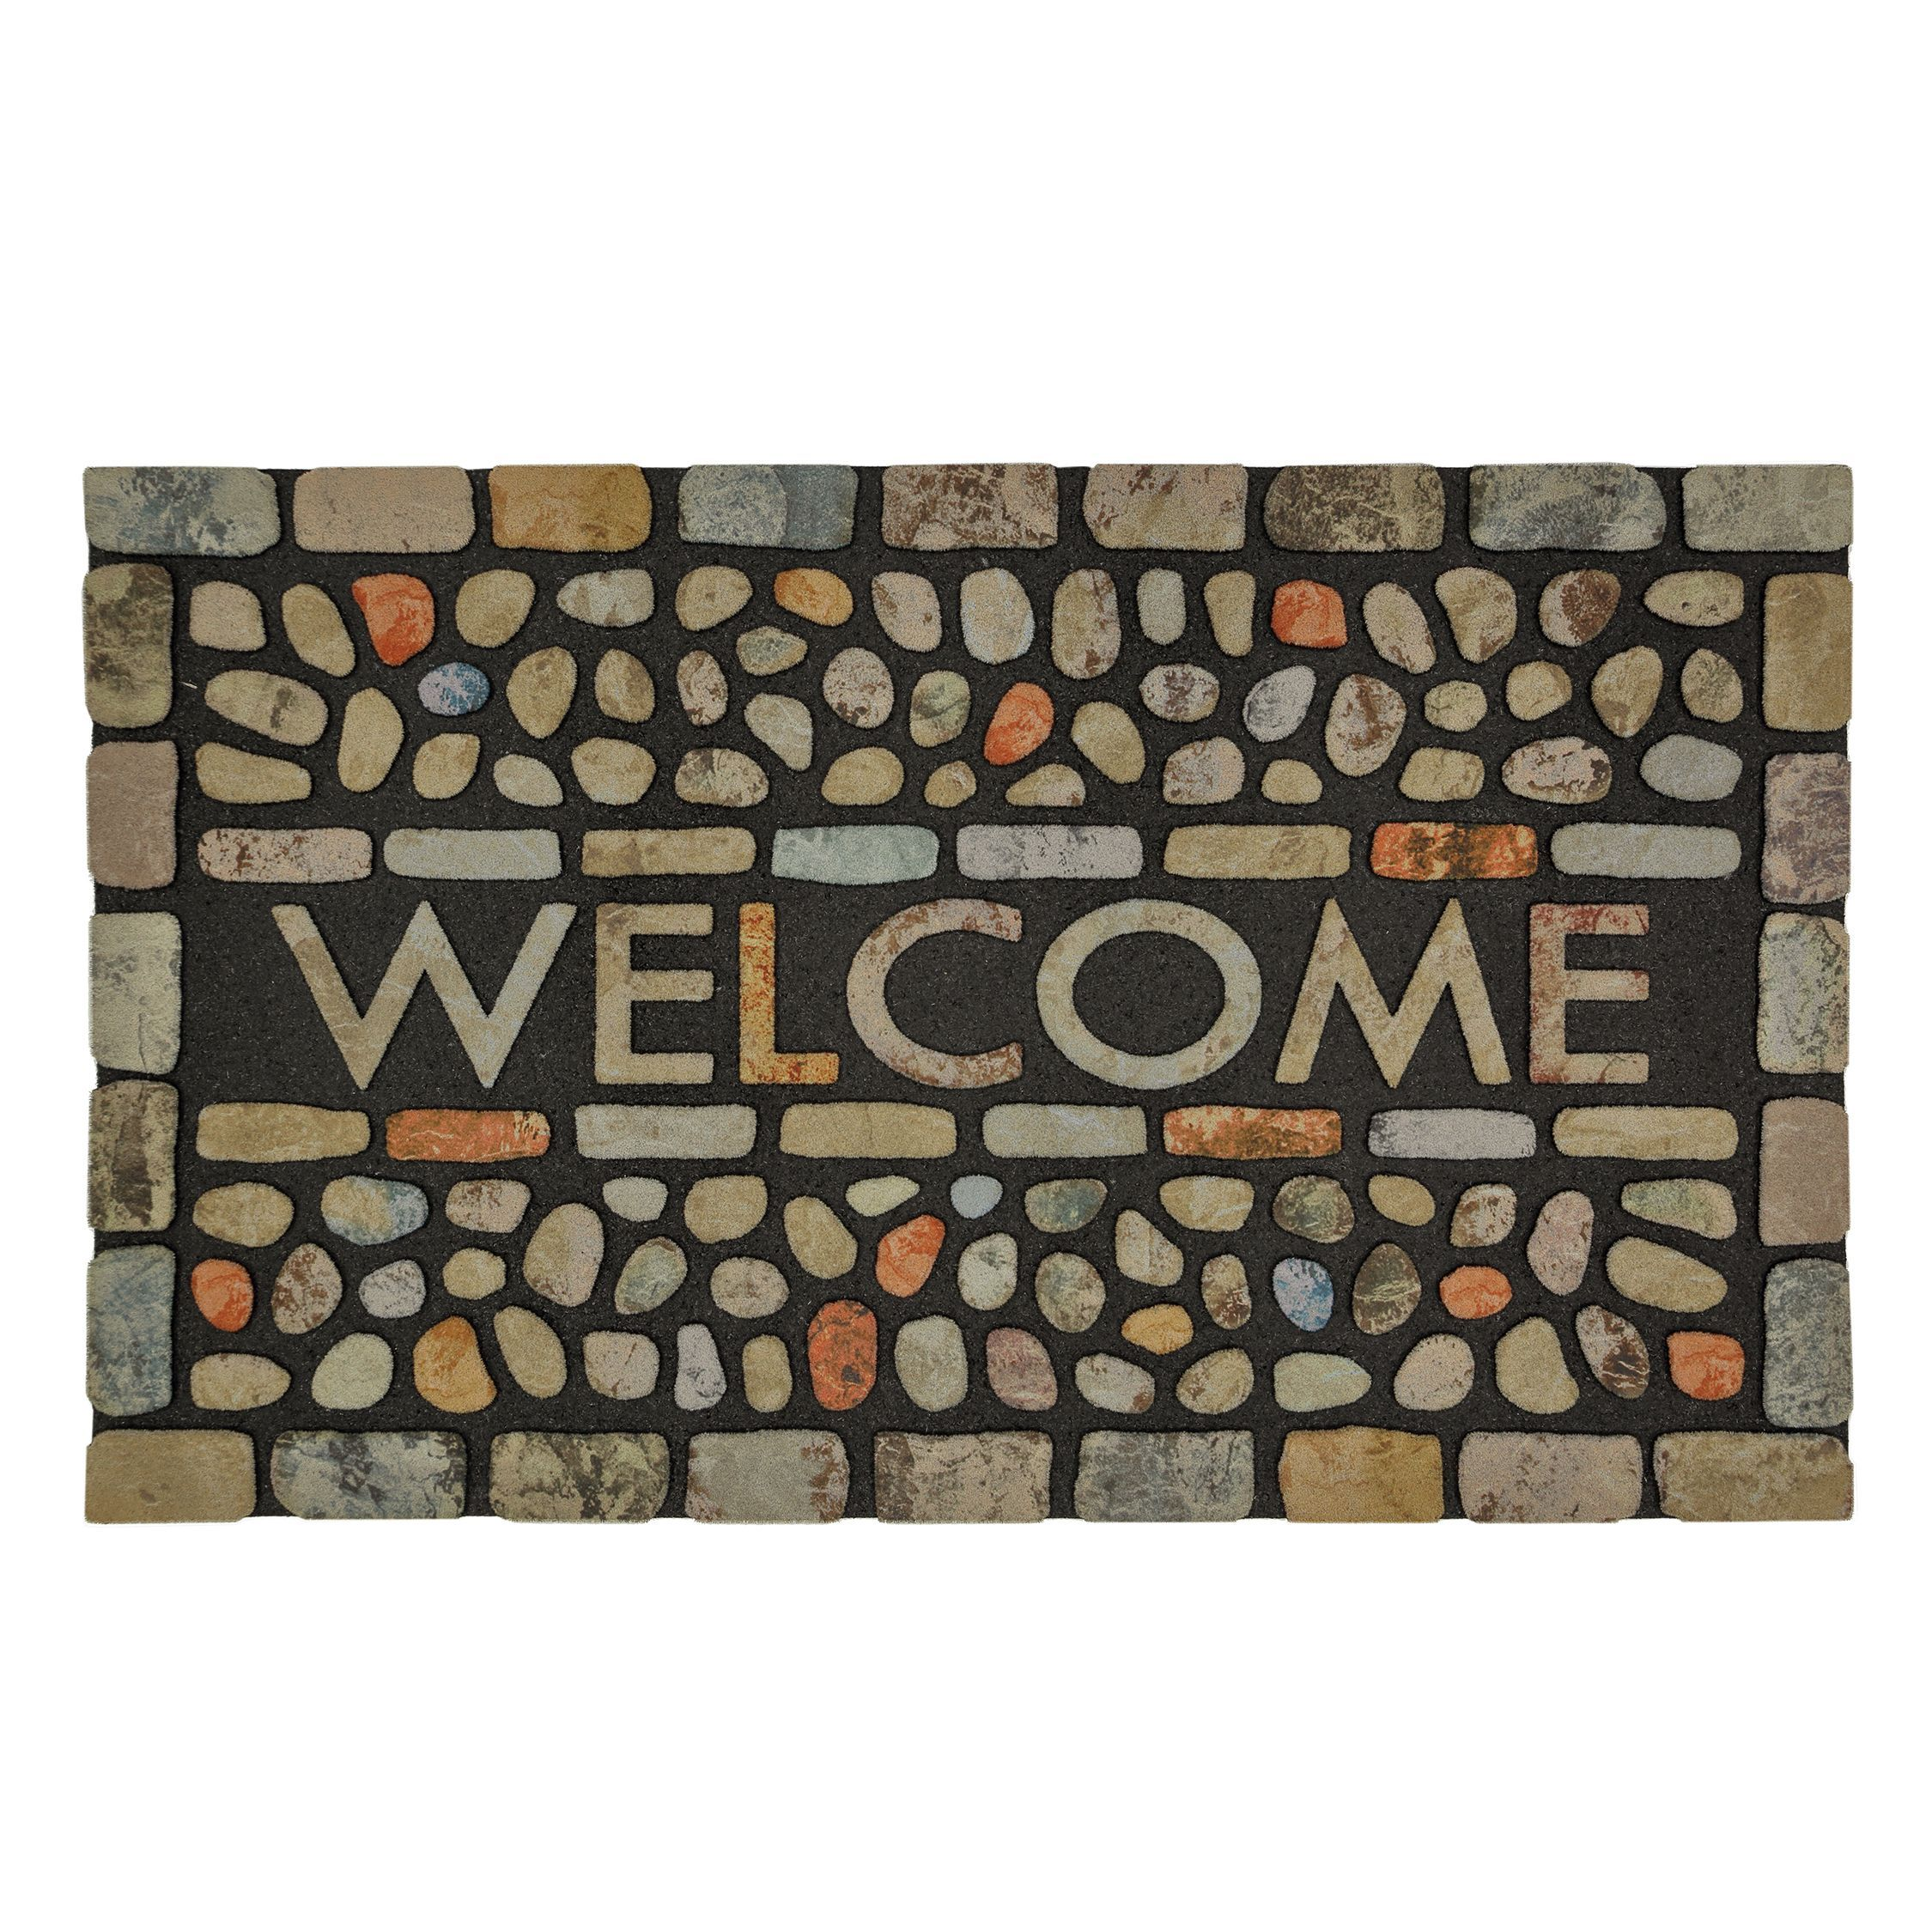 Mohawk Home Doorscapes Pebble Brook Light Mat (1'6 x 2'6) (Pebble Brooke Light), Multi (Polyester, Print), Outdoor Décor